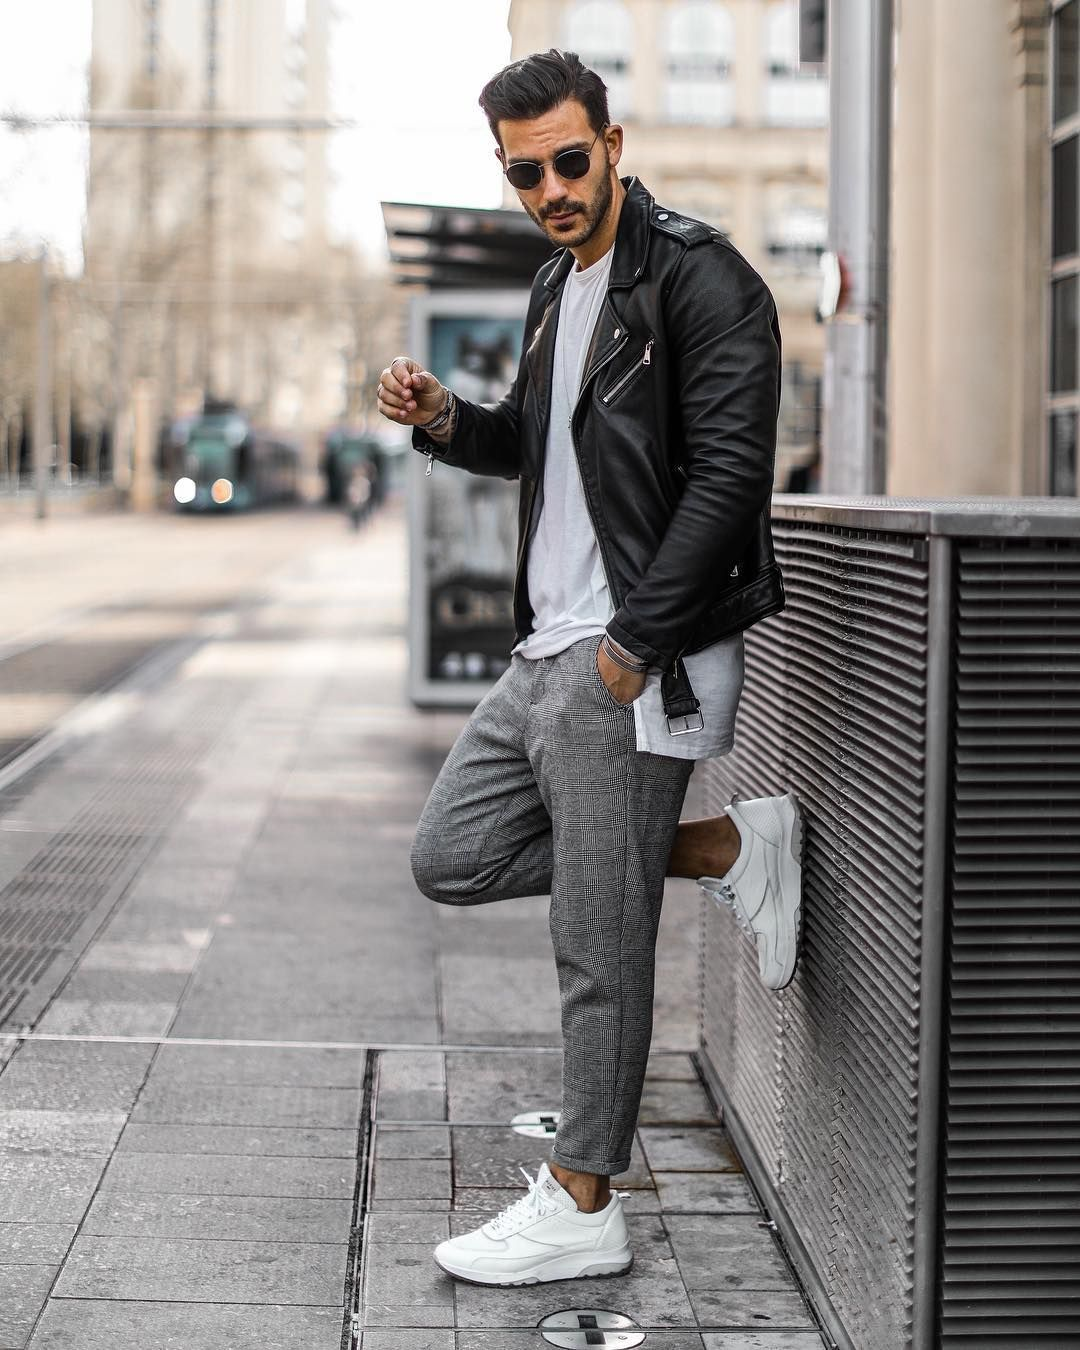 1 713 Likes 64 Comments Fashion For Men Lifestyle Fbysam On Instagram Bon Week End A Tous Retrouvez Best Man S Outfit Poses For Men Mens Outfits